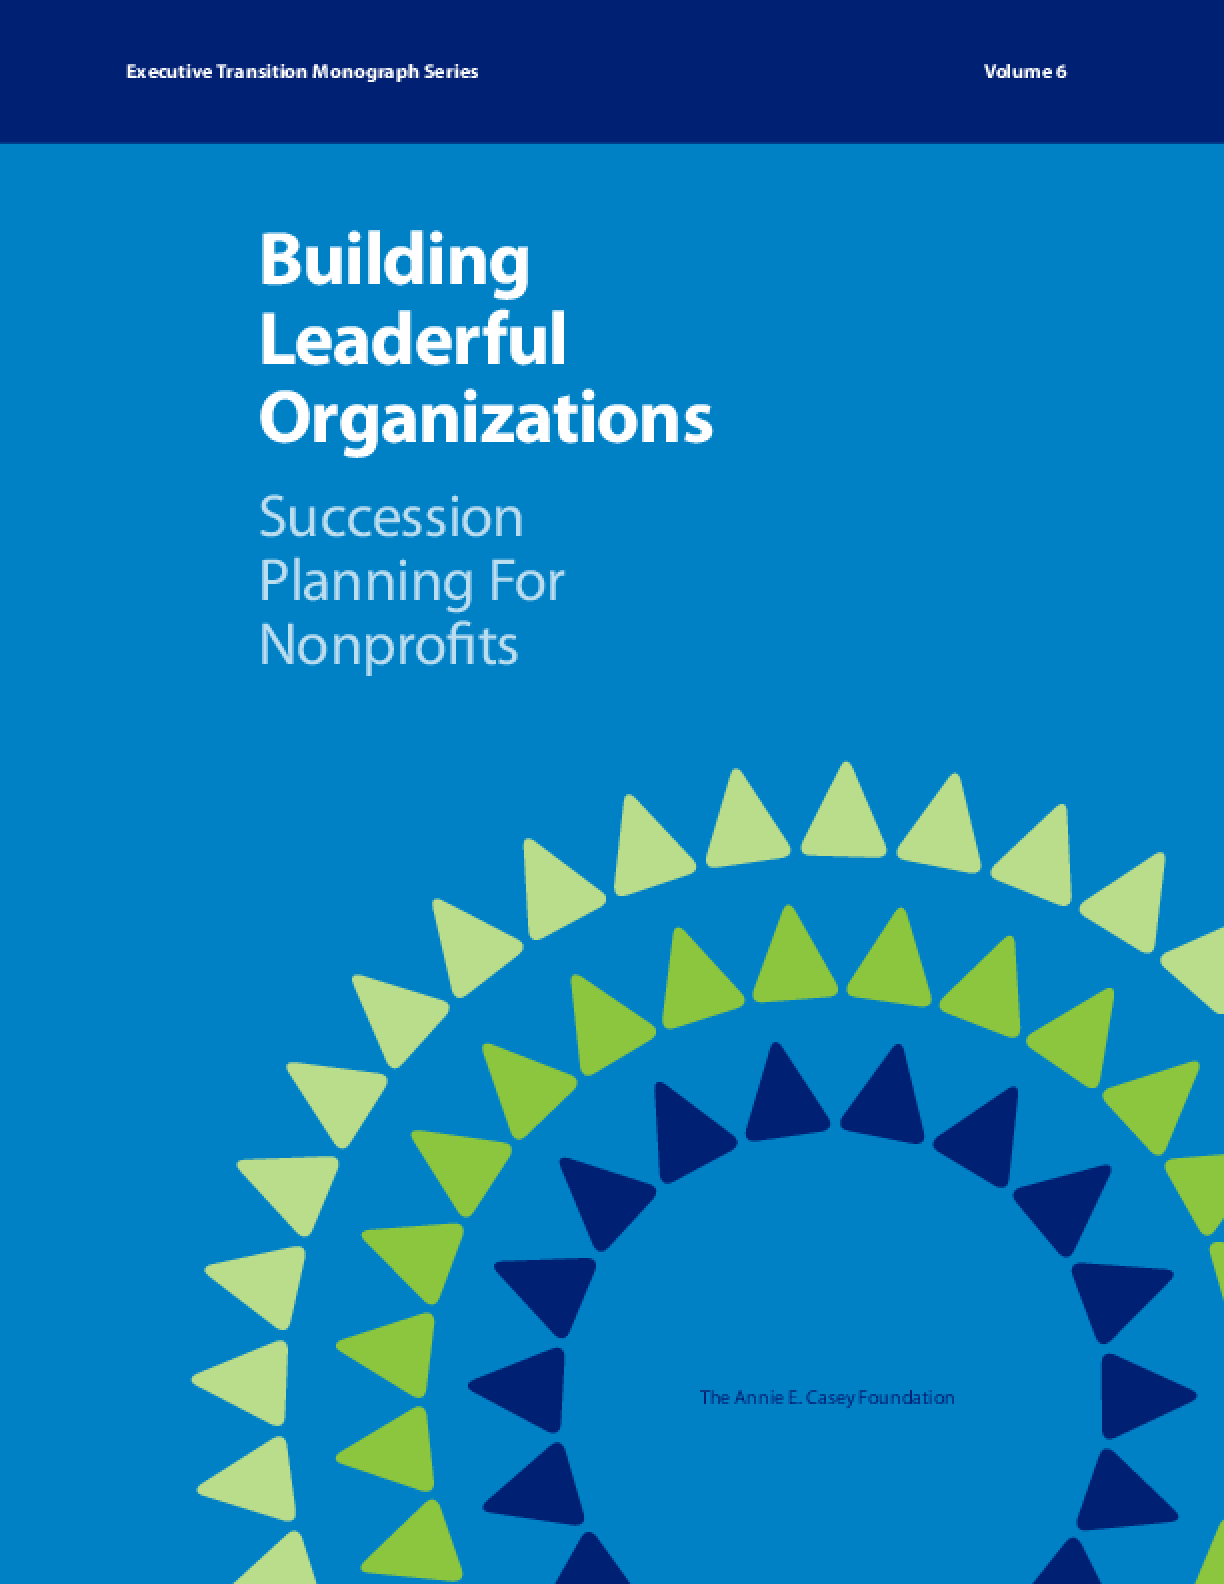 Building Leaderful Organizations: Succession Planning for Nonprofits